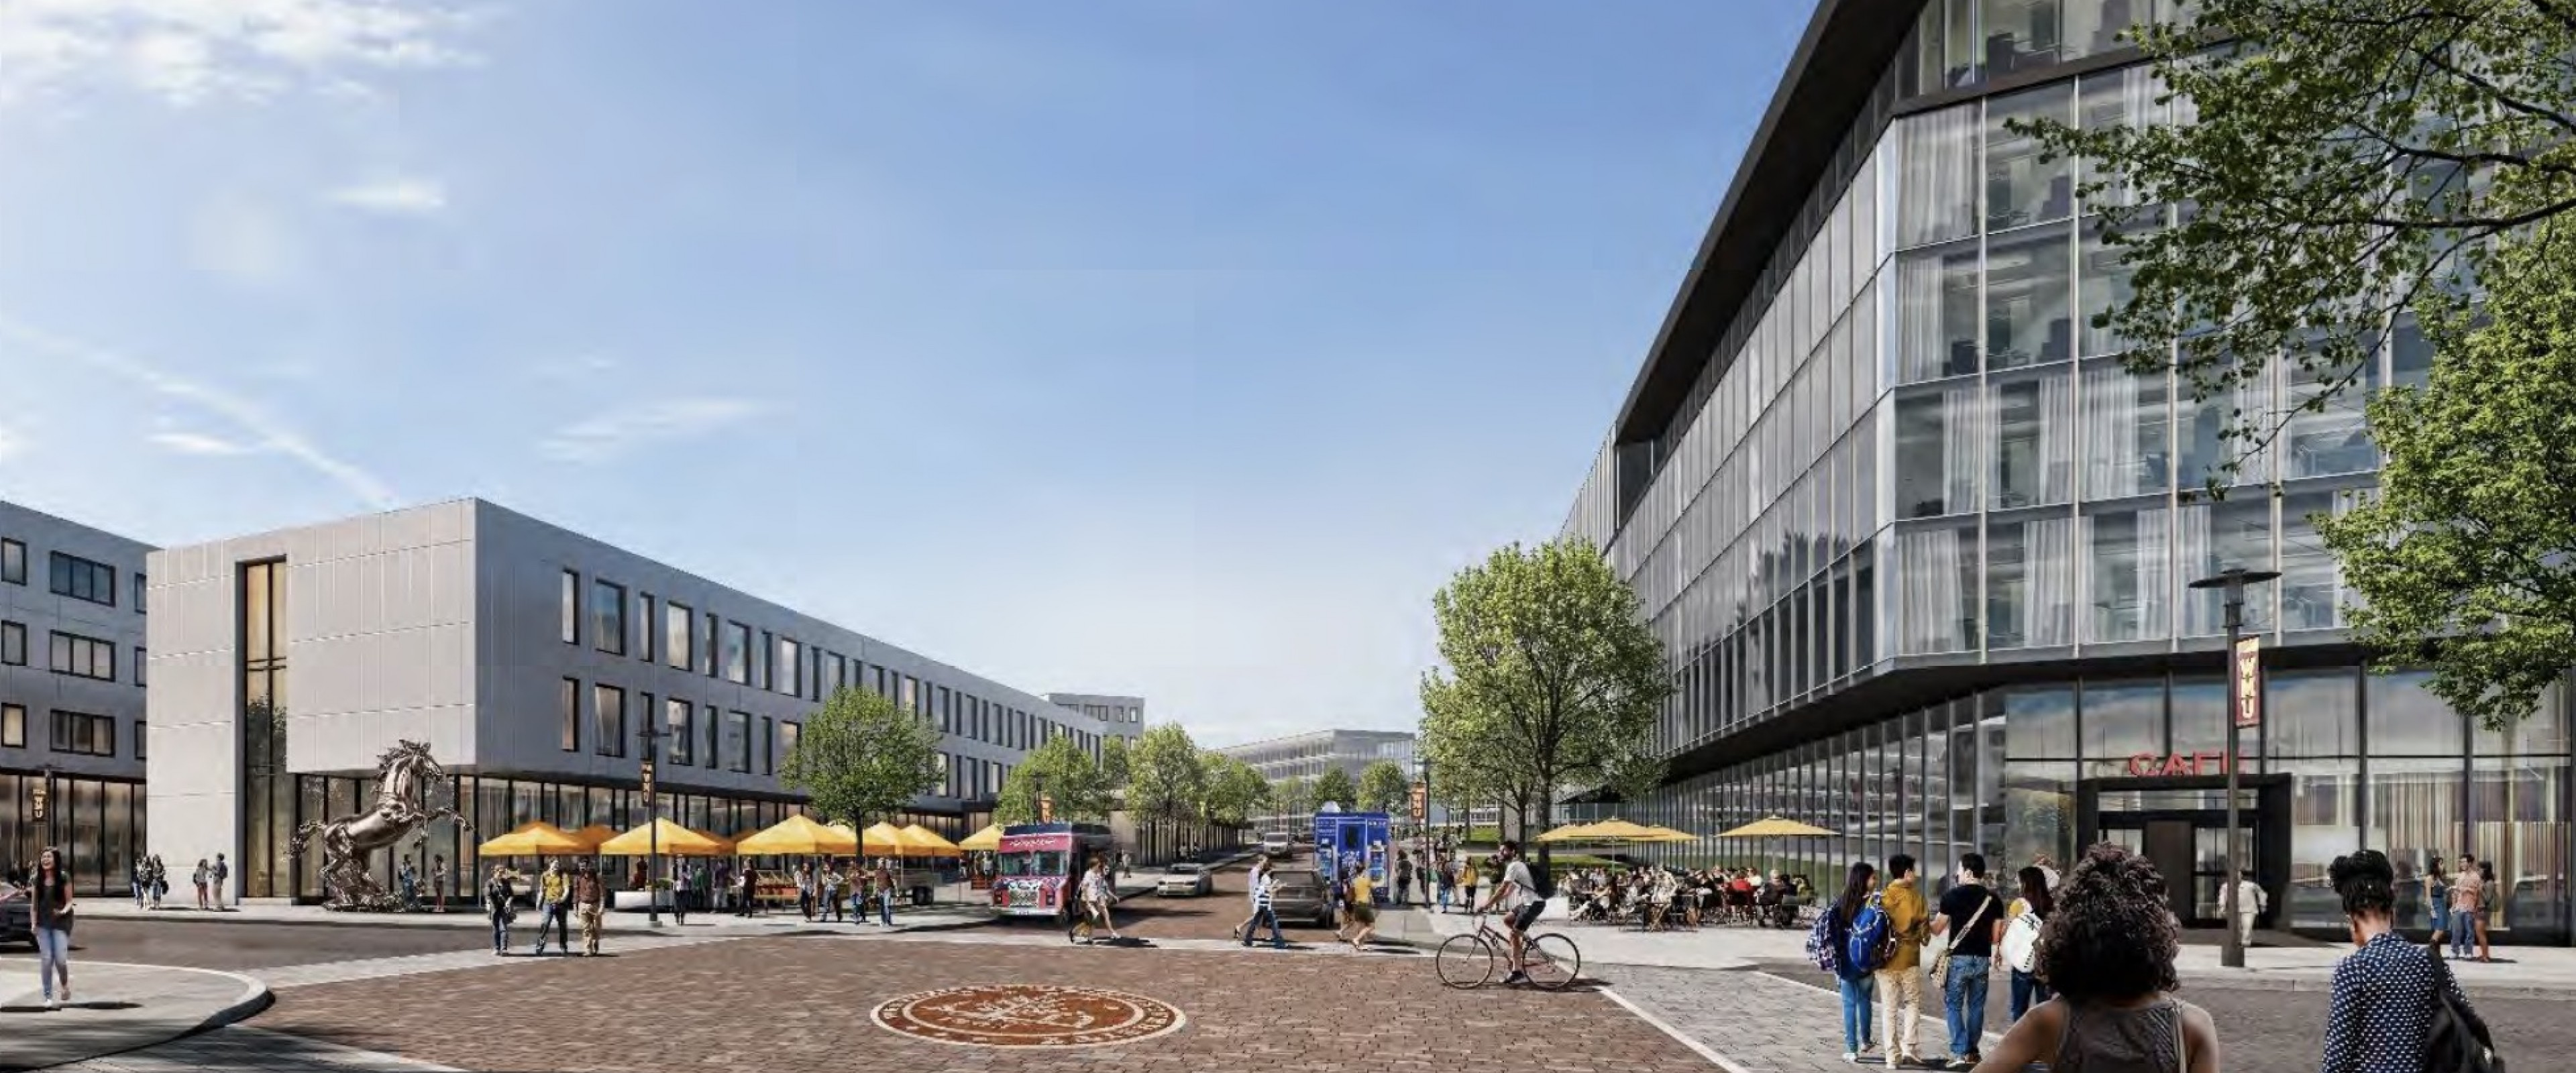 Rendering of an open area showing a large brick walkway between buildings with the official WMU seal embedded in the brickwork